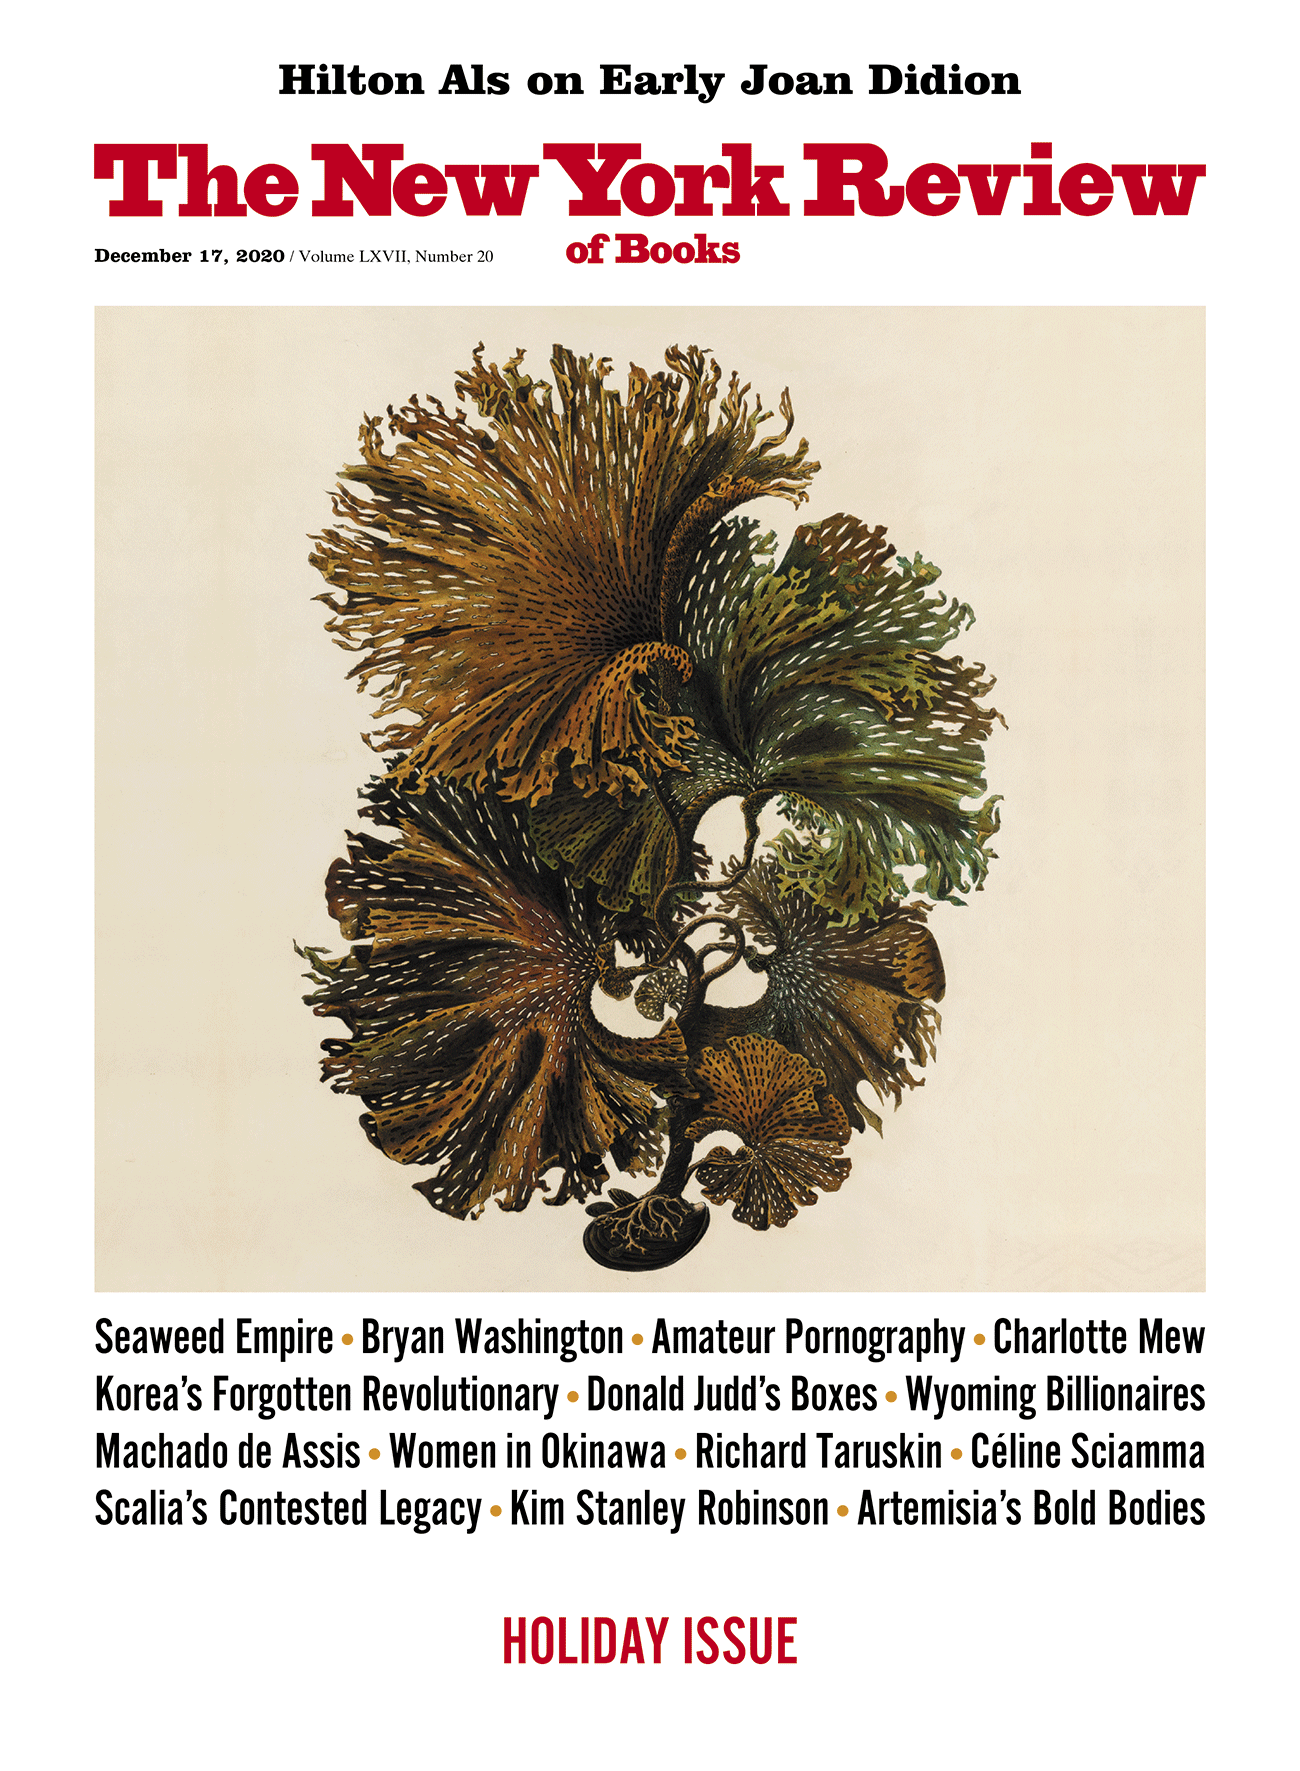 Image of the December 17, 2020 issue cover.